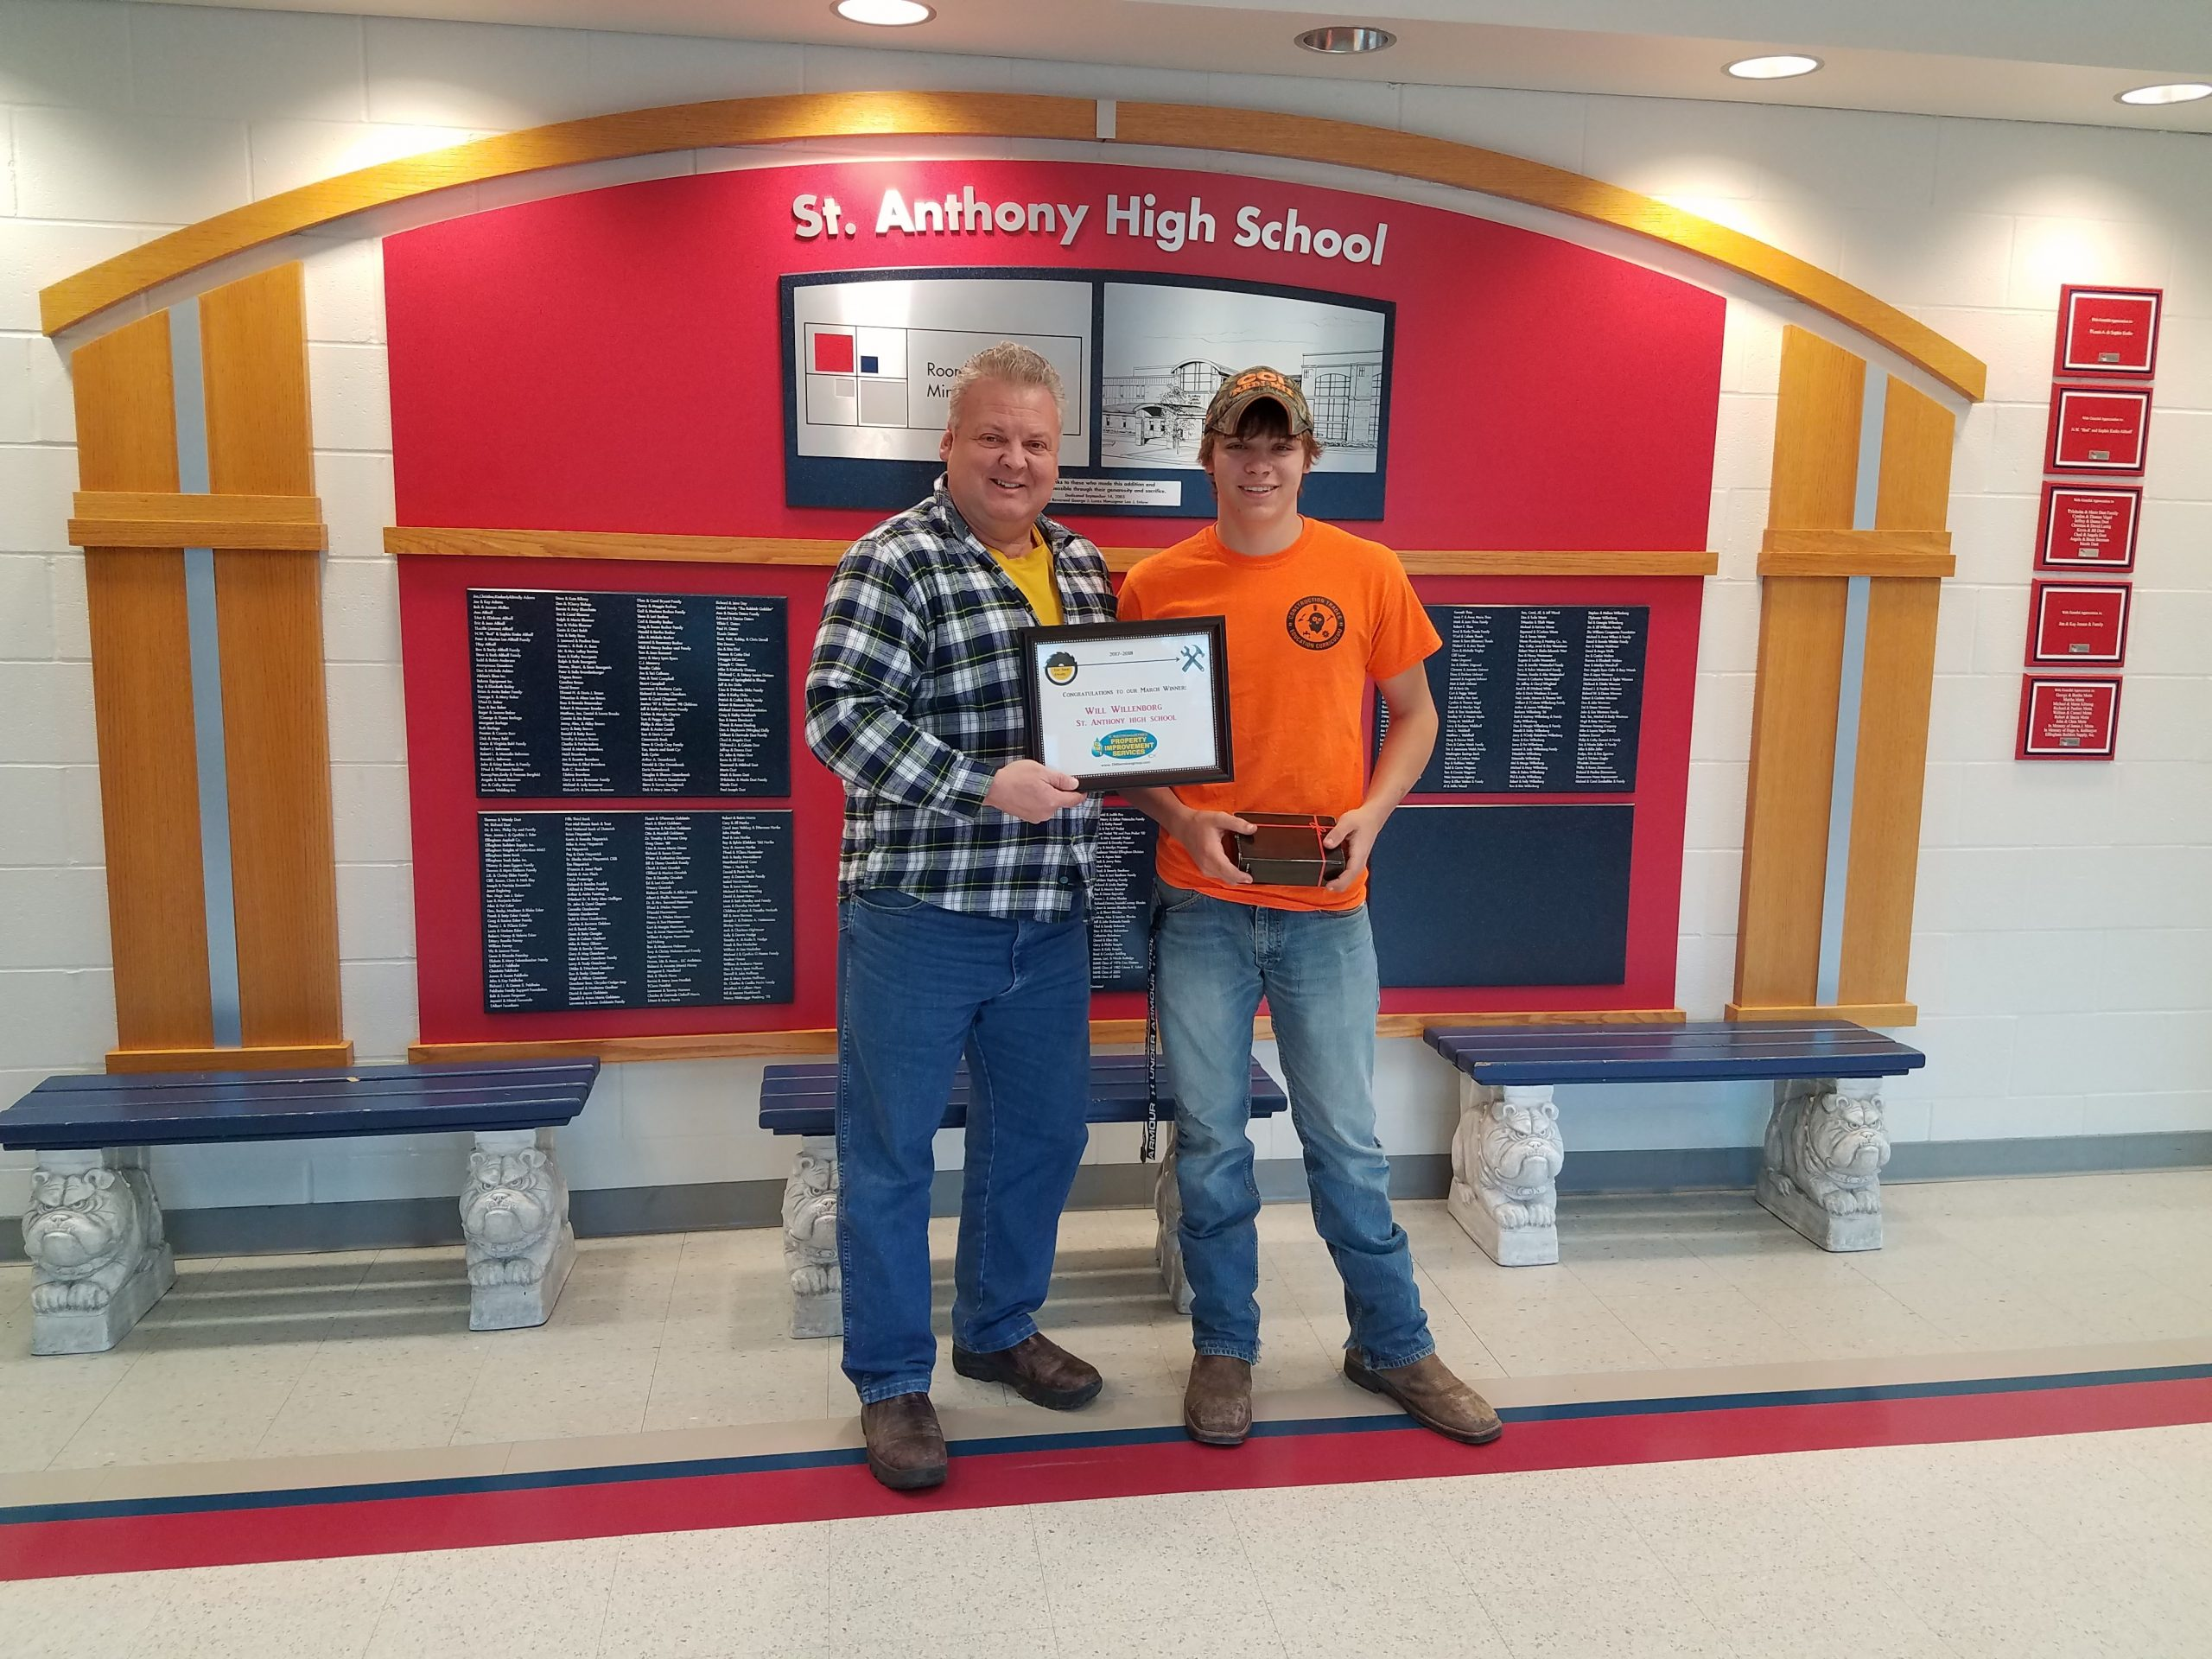 St. Anthony High School Student Receives Top Shop Award